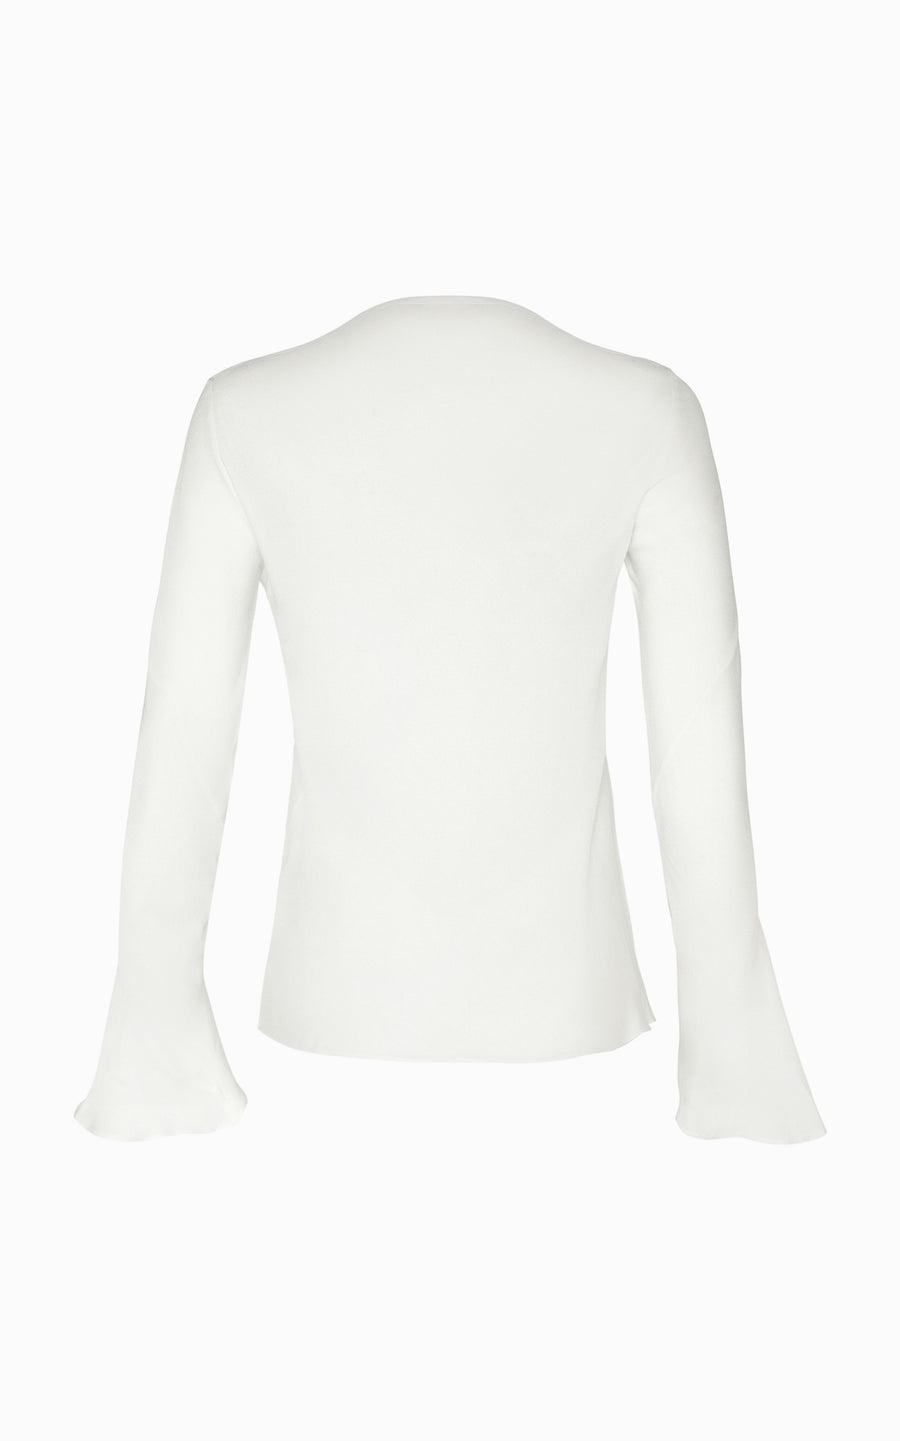 Preorder Double Helix Long Sleeve Top | Ivory